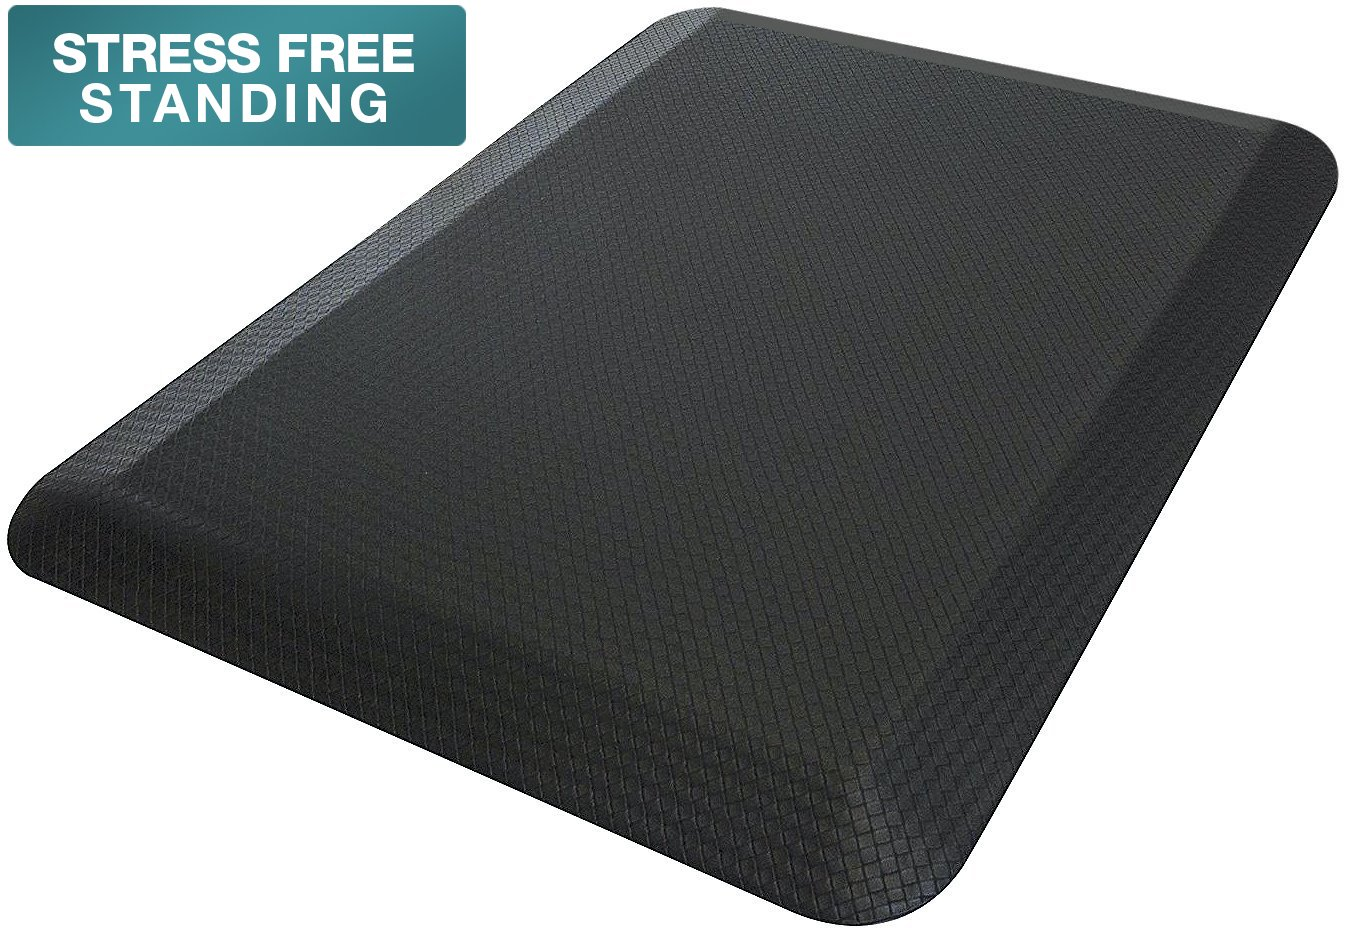 Sorbus Anti Fatigue Mat - Comfort Standing Mat Kitchen Rug - Perfect for Kitchen and Standing Office Desk (24 in x 18 in, Black) by Sorbus